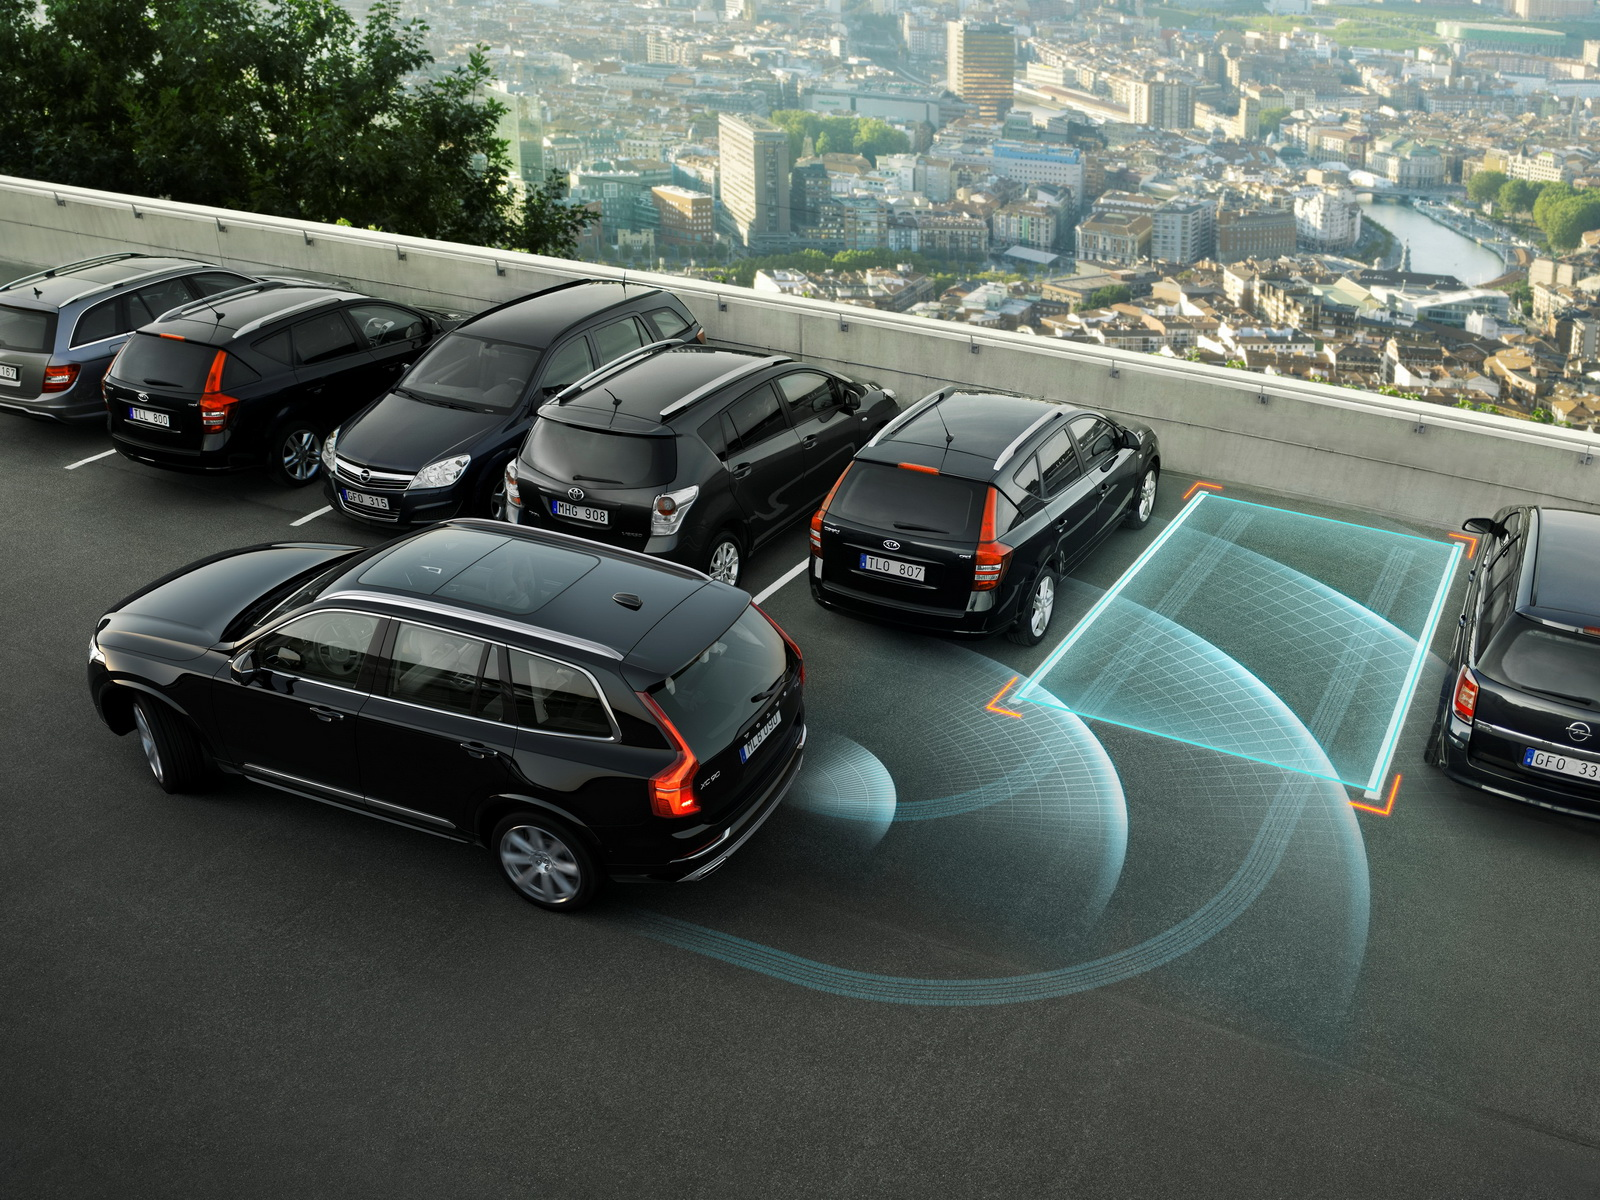 Park Assist Pilot offers automatic reversing into a parking bay as well as entering and exiting a parallel parking spot.